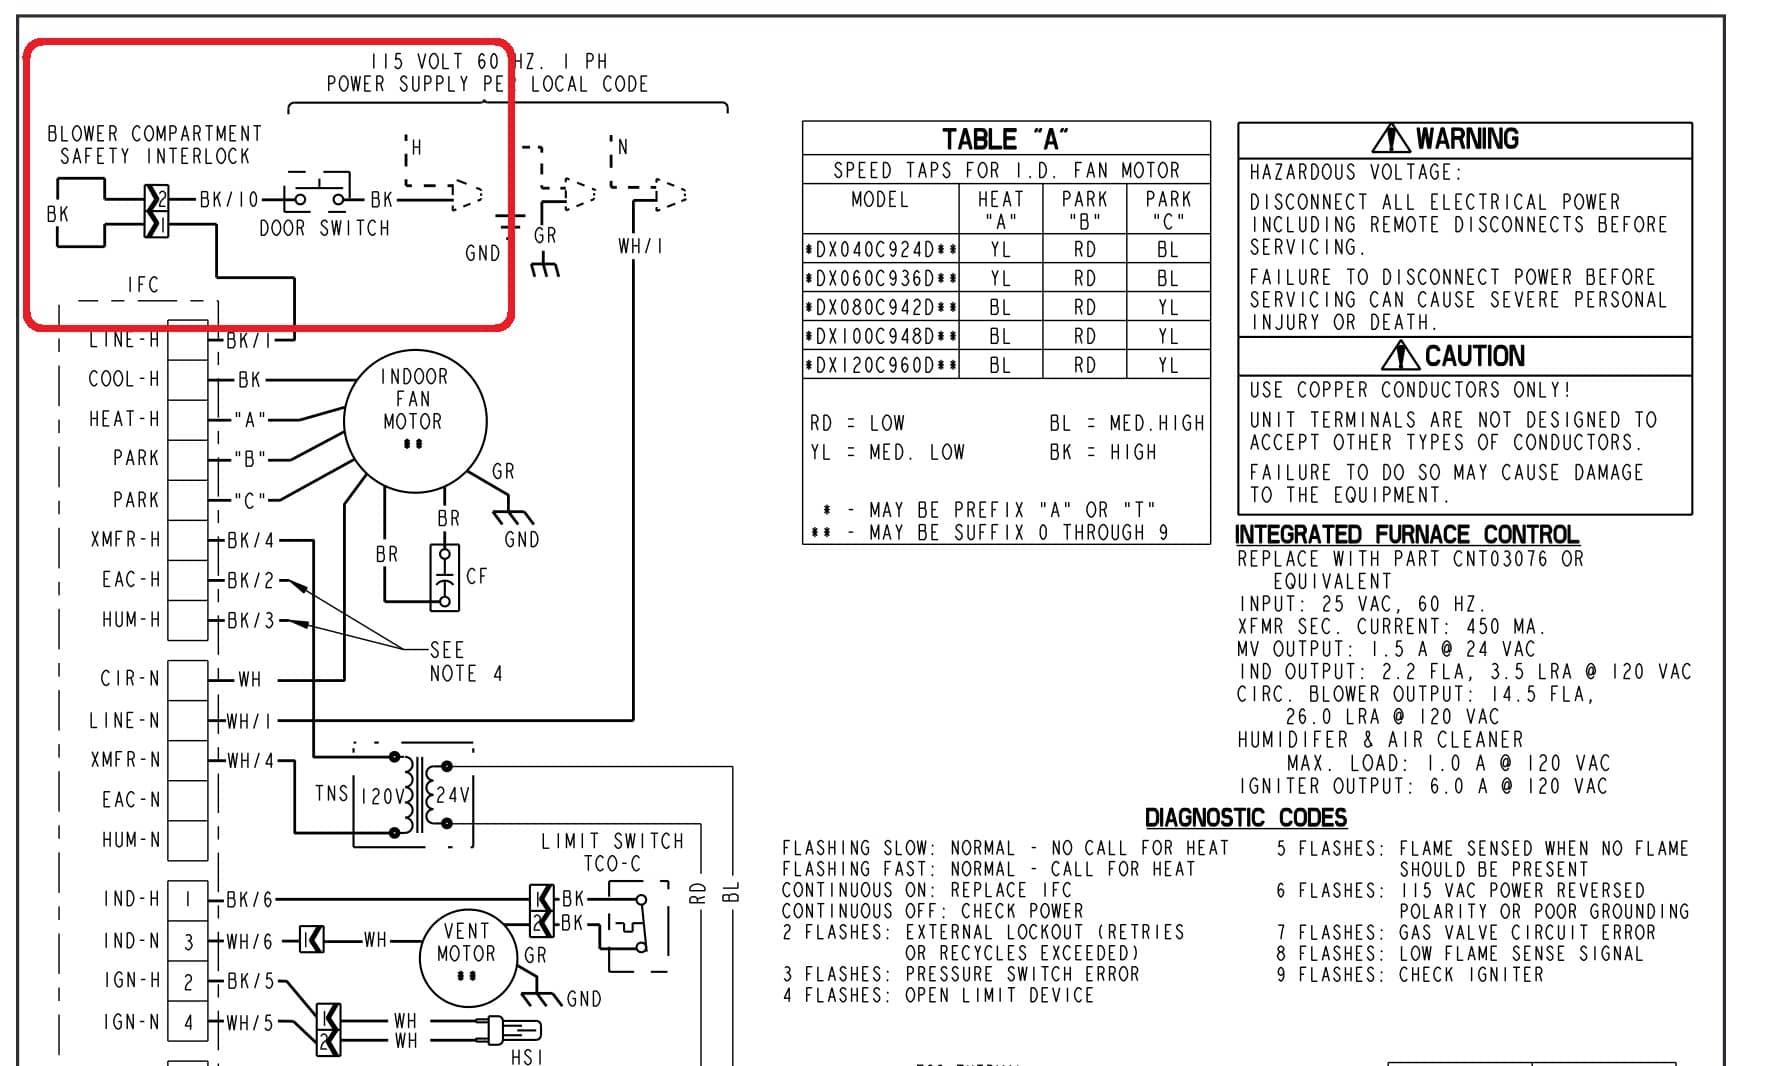 Rheem Control Board Wiring Diagram, Rheem, Free Engine